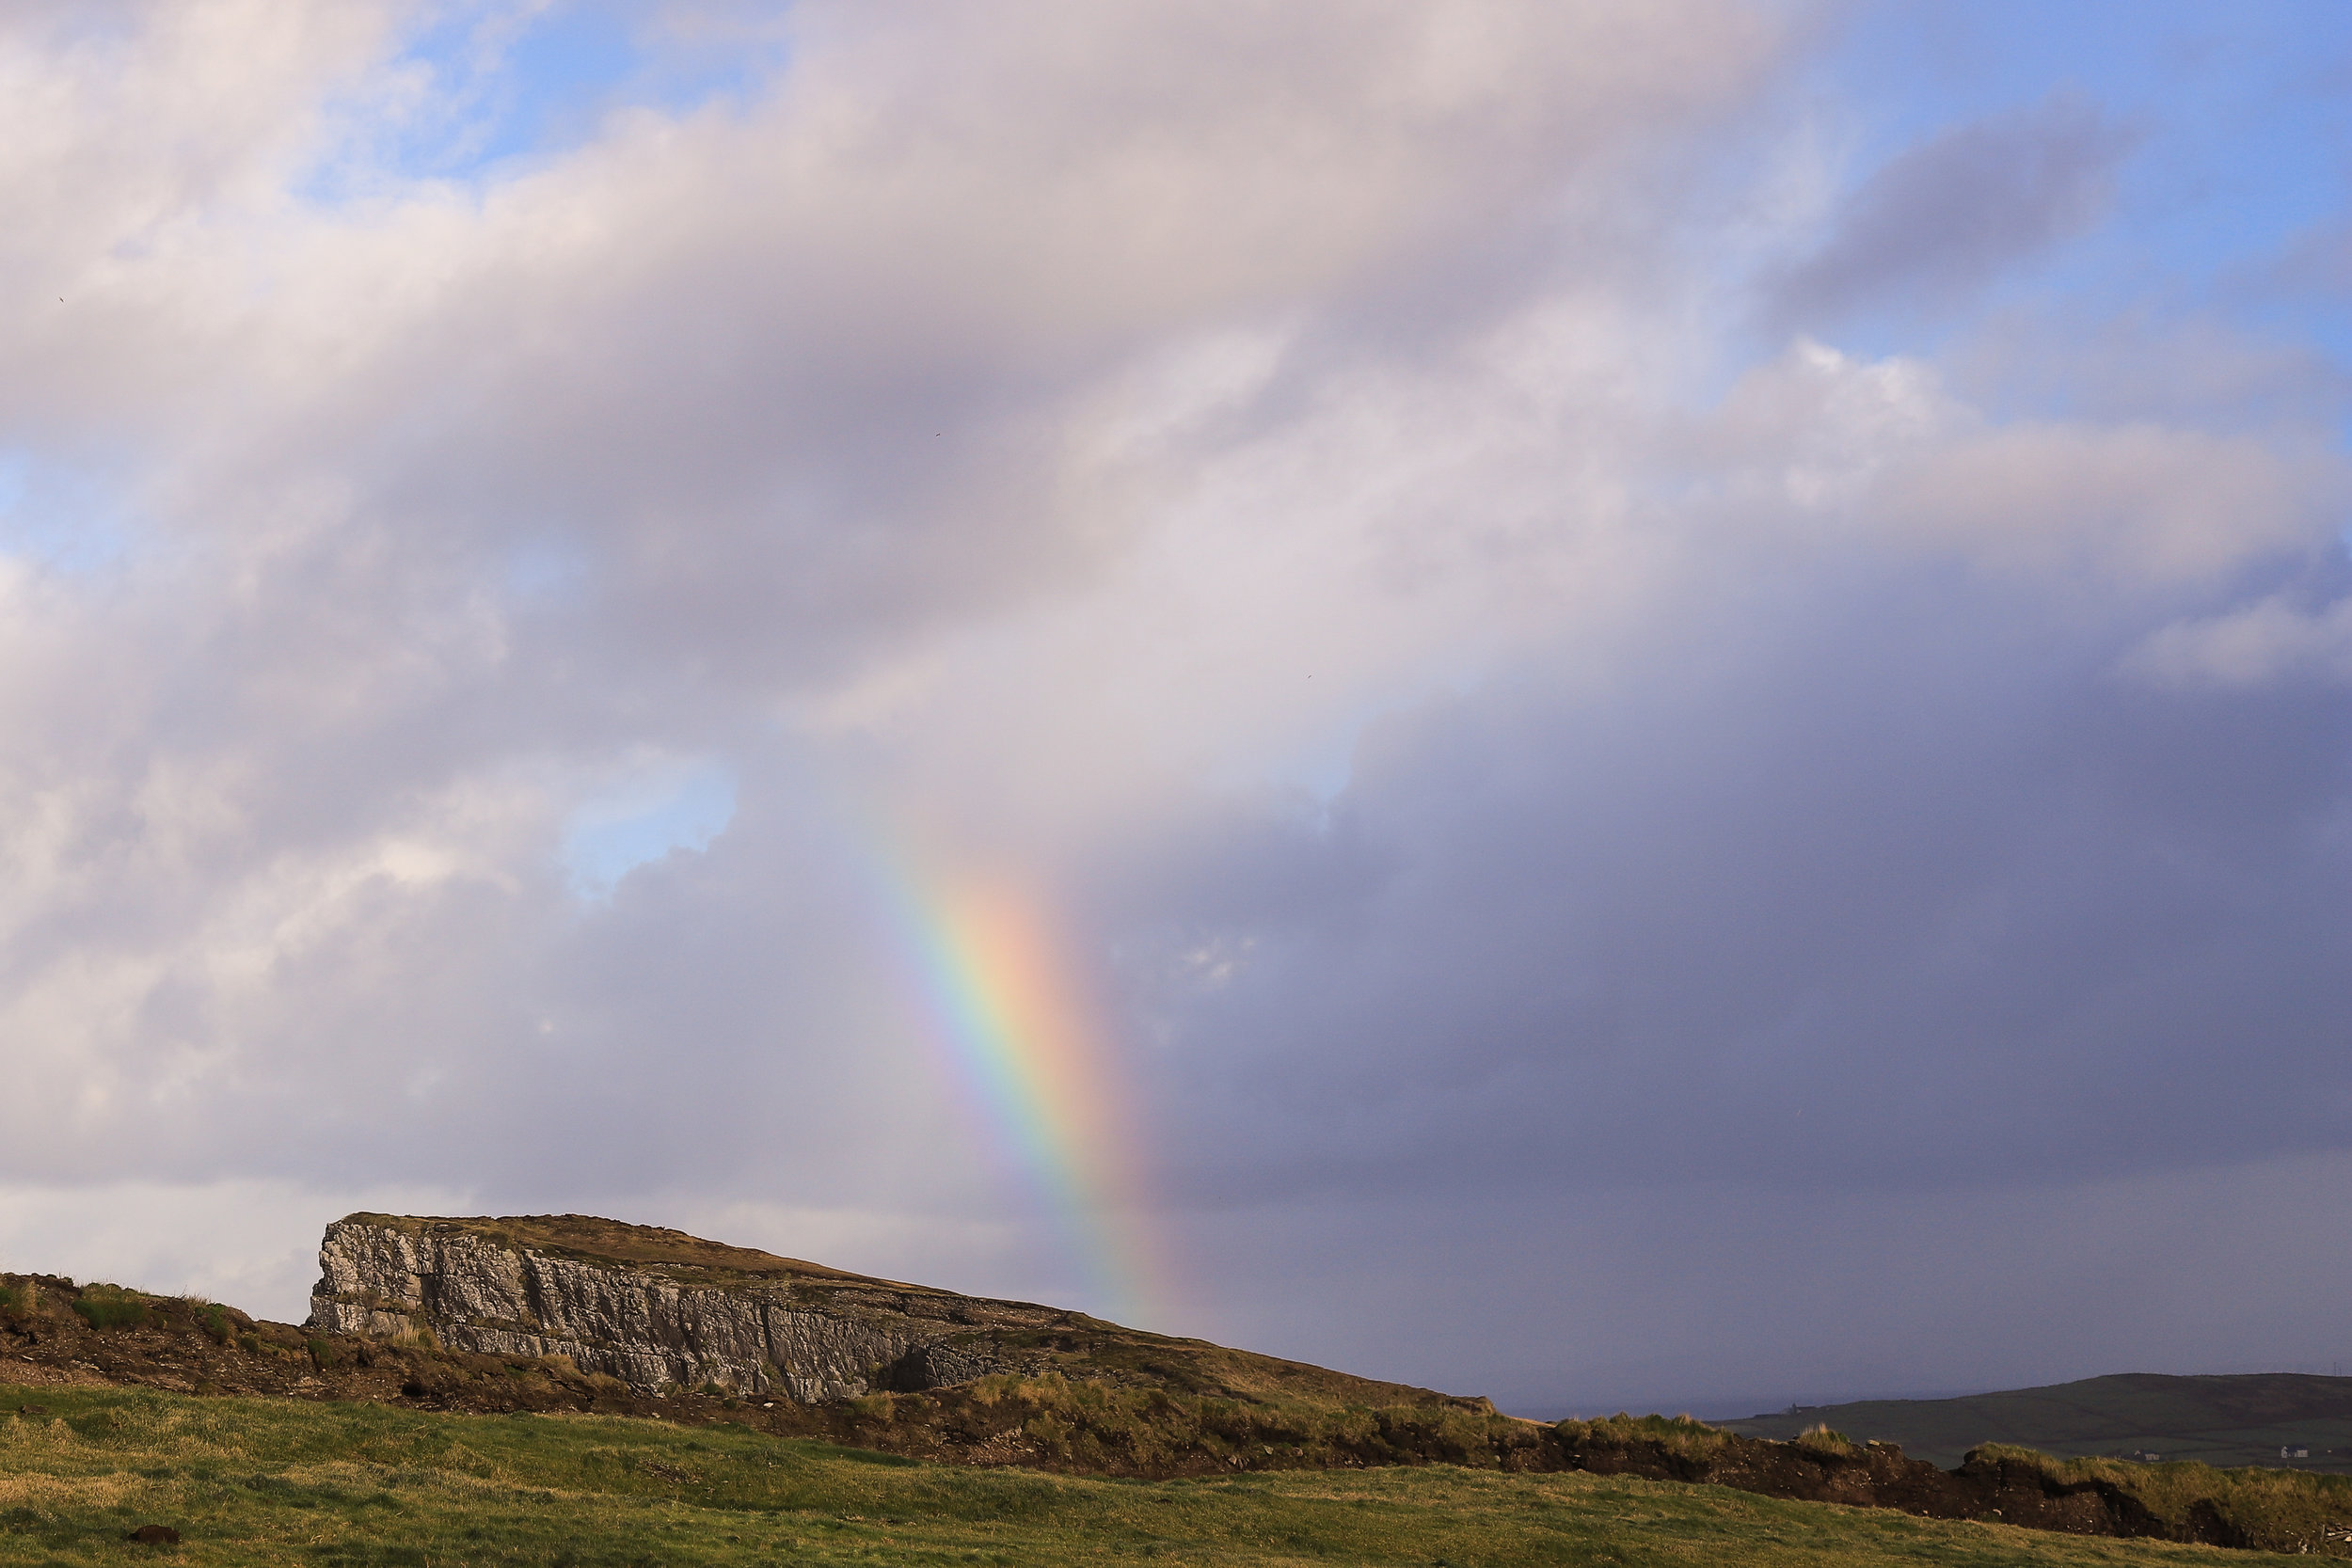 One of the many rainbows we saw in Ireland